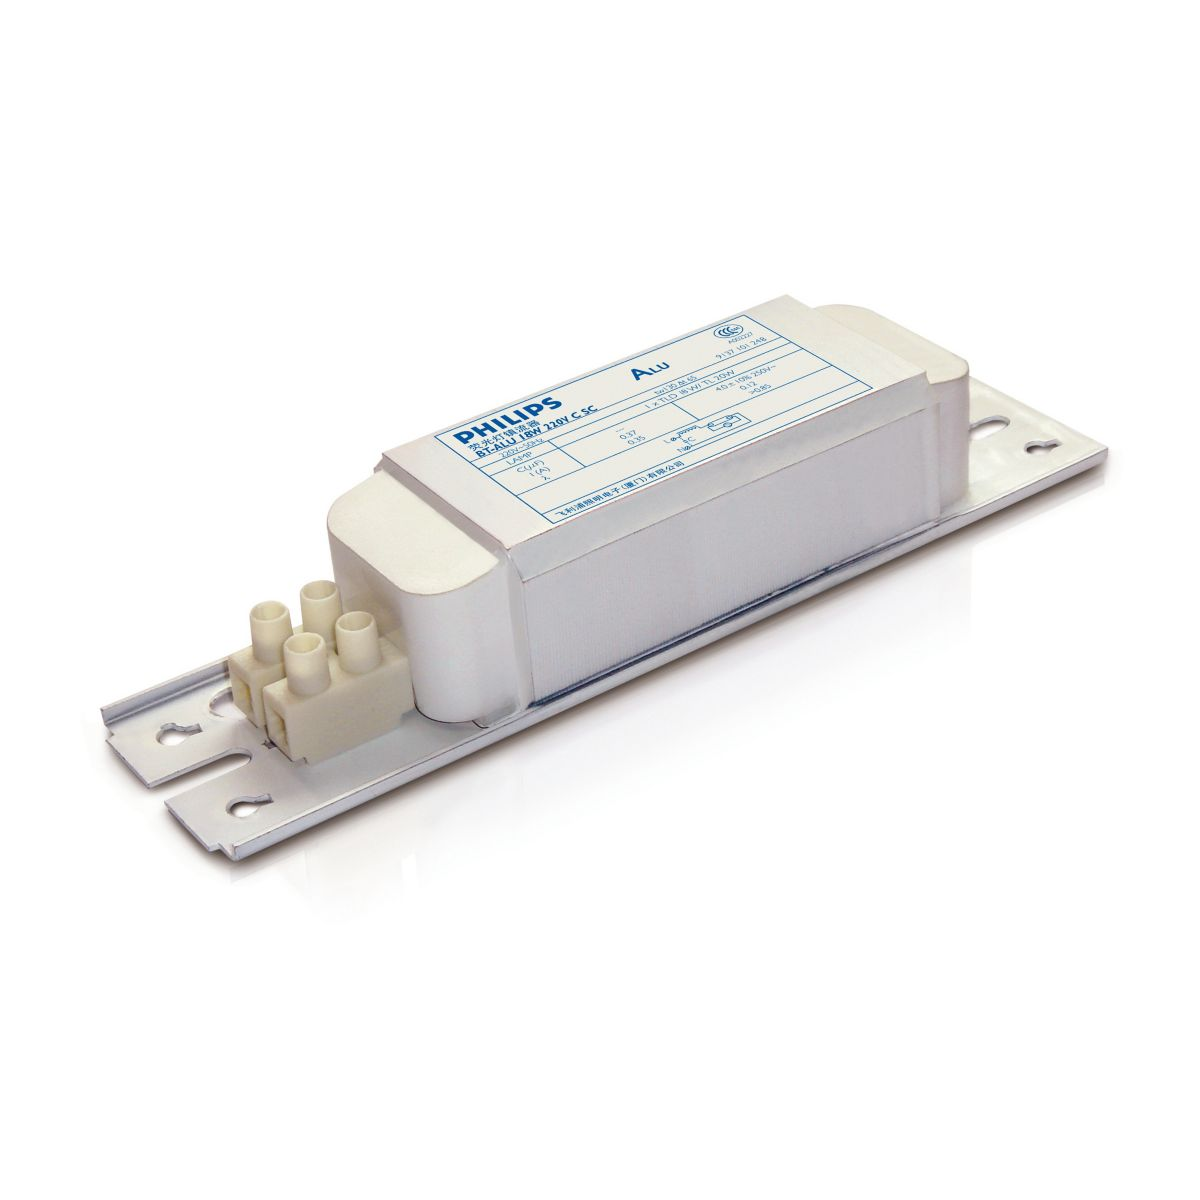 Bpl Em Ballasts For Cfl Pl T S And C Lamps Fluorescent 18 W Circuit Diagram Electromagnetic Philips Lighting